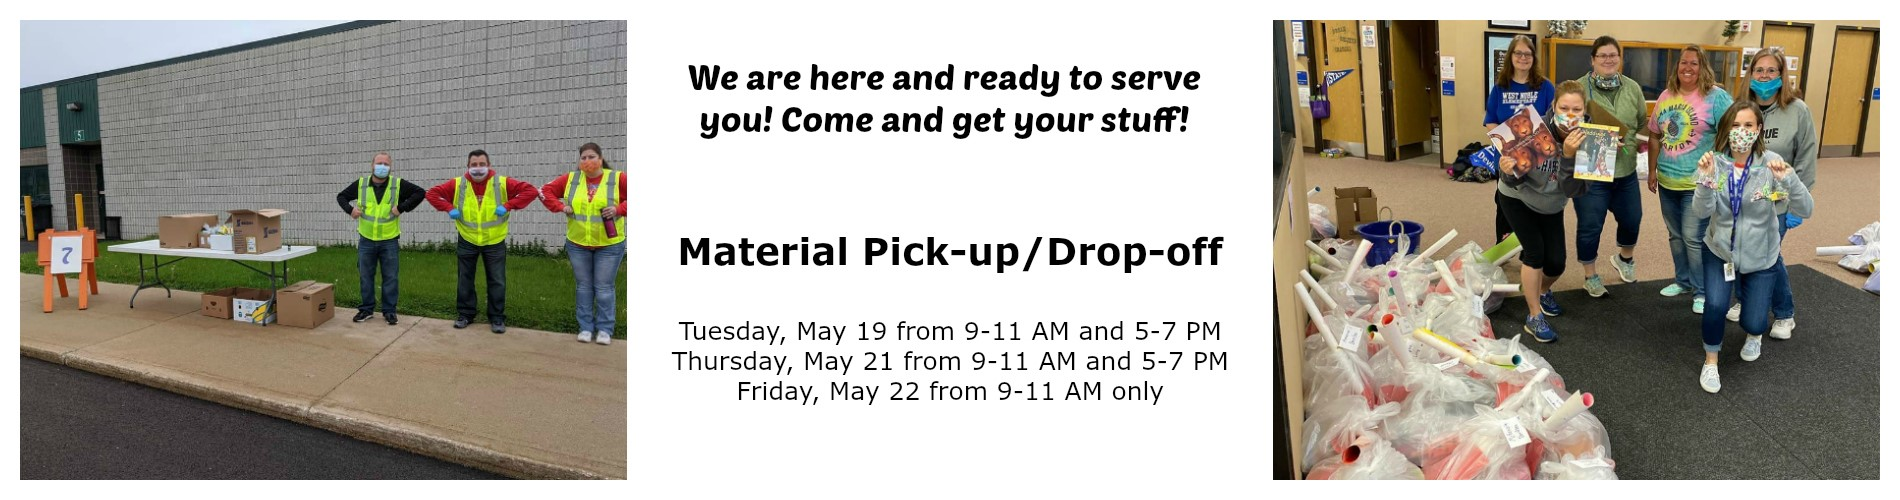 Student material pick-up drop-off